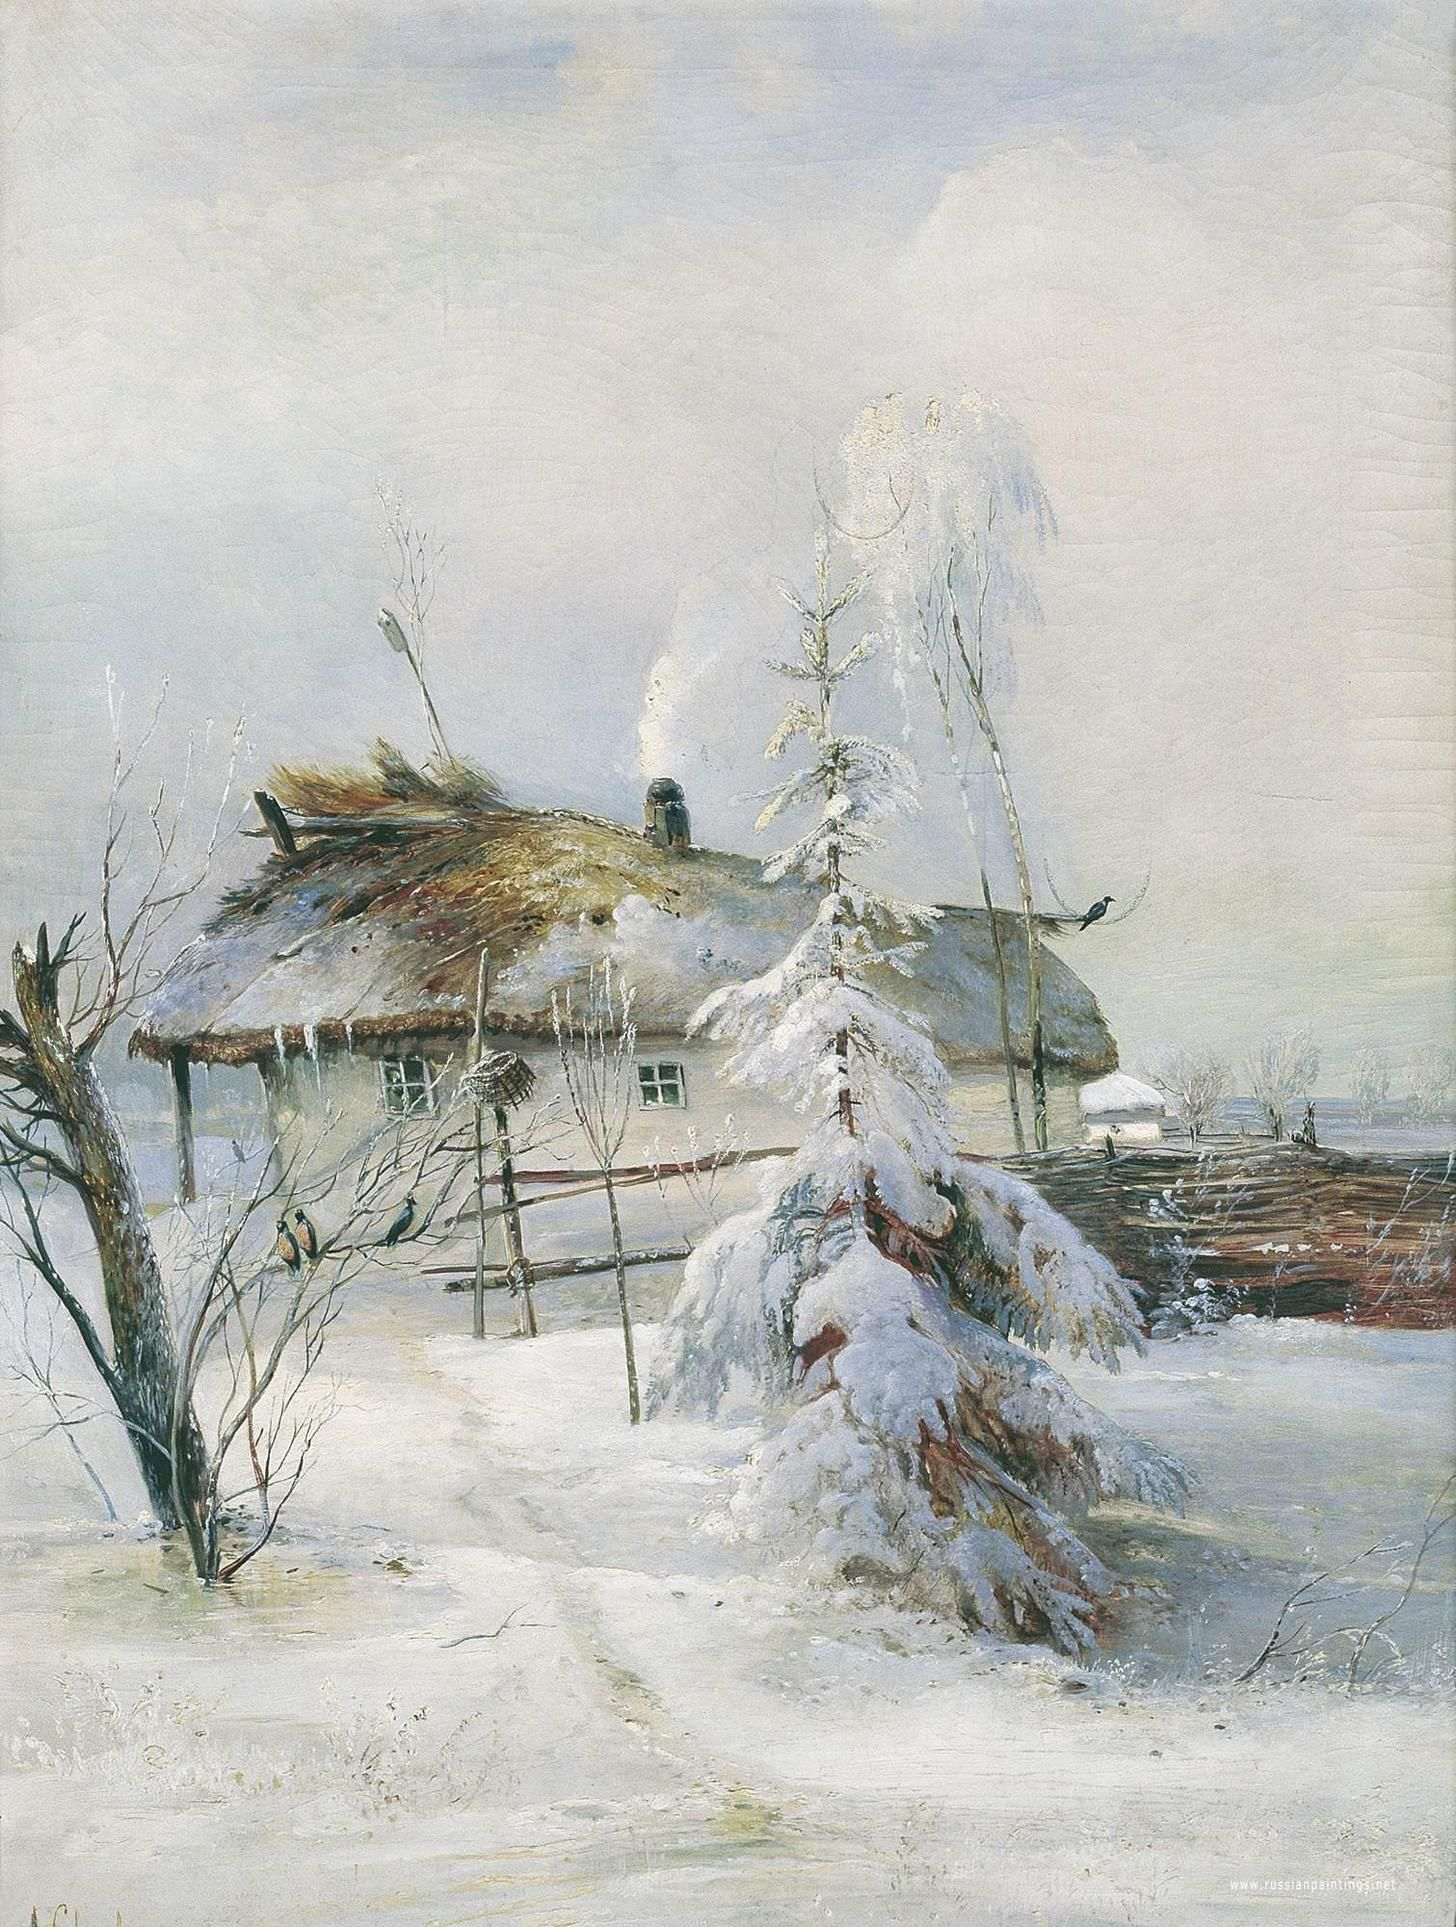 Winter, 1873 Alexei Kondratyevich Savrasov (May 24, 1830 – Oct 8, 1897) was a Russian landscape painter and creator of the lyrical landscape style